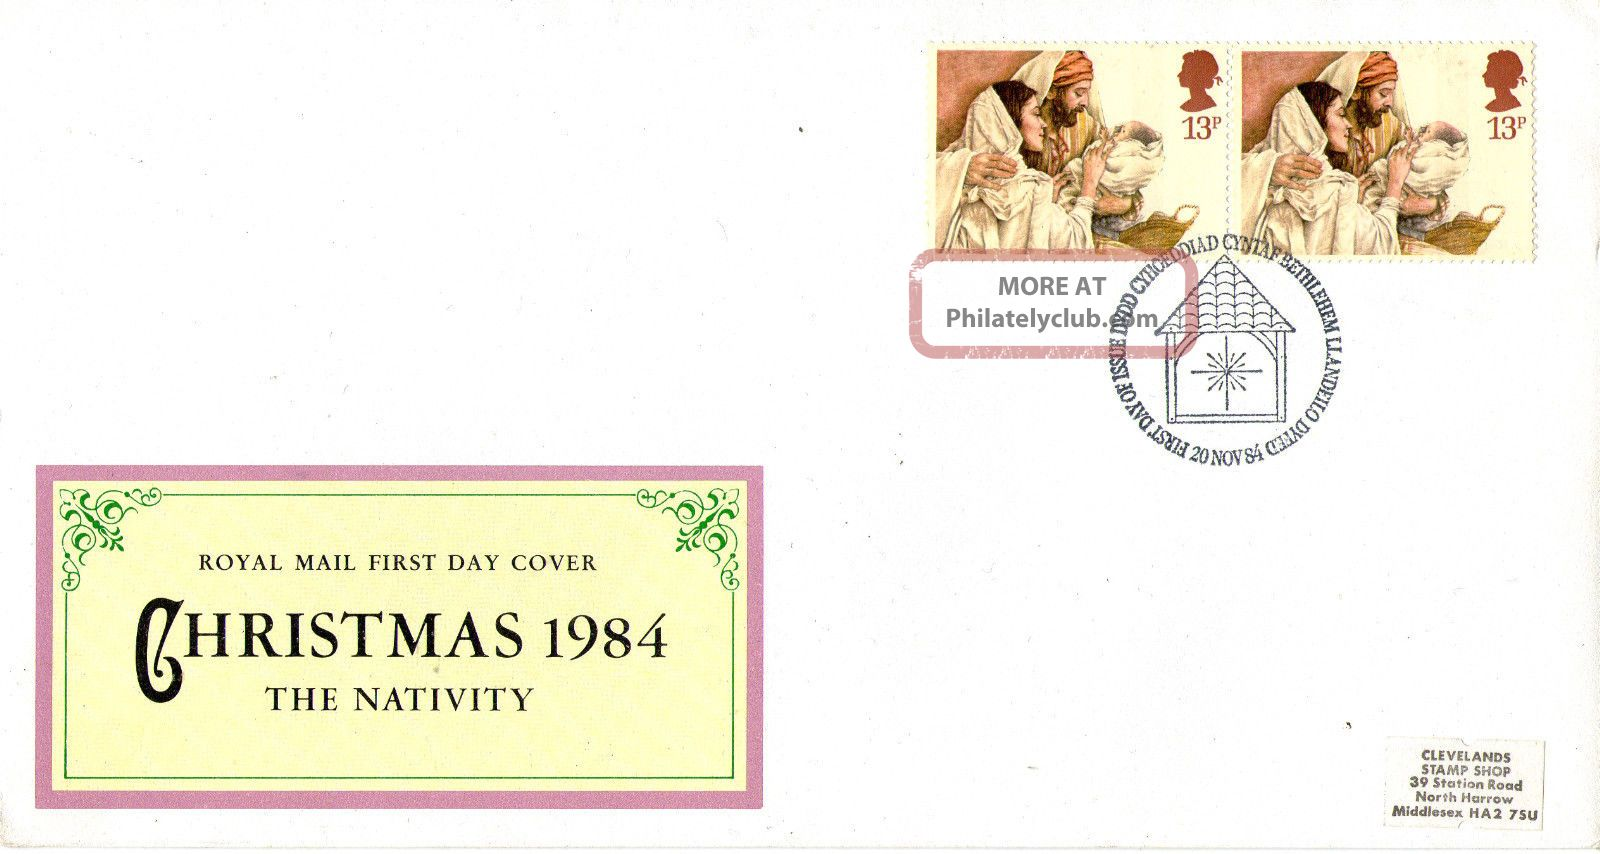 20 November 1984 Christmas Royal Mail First Day Cover Bethlehem Shs Topical Stamps photo